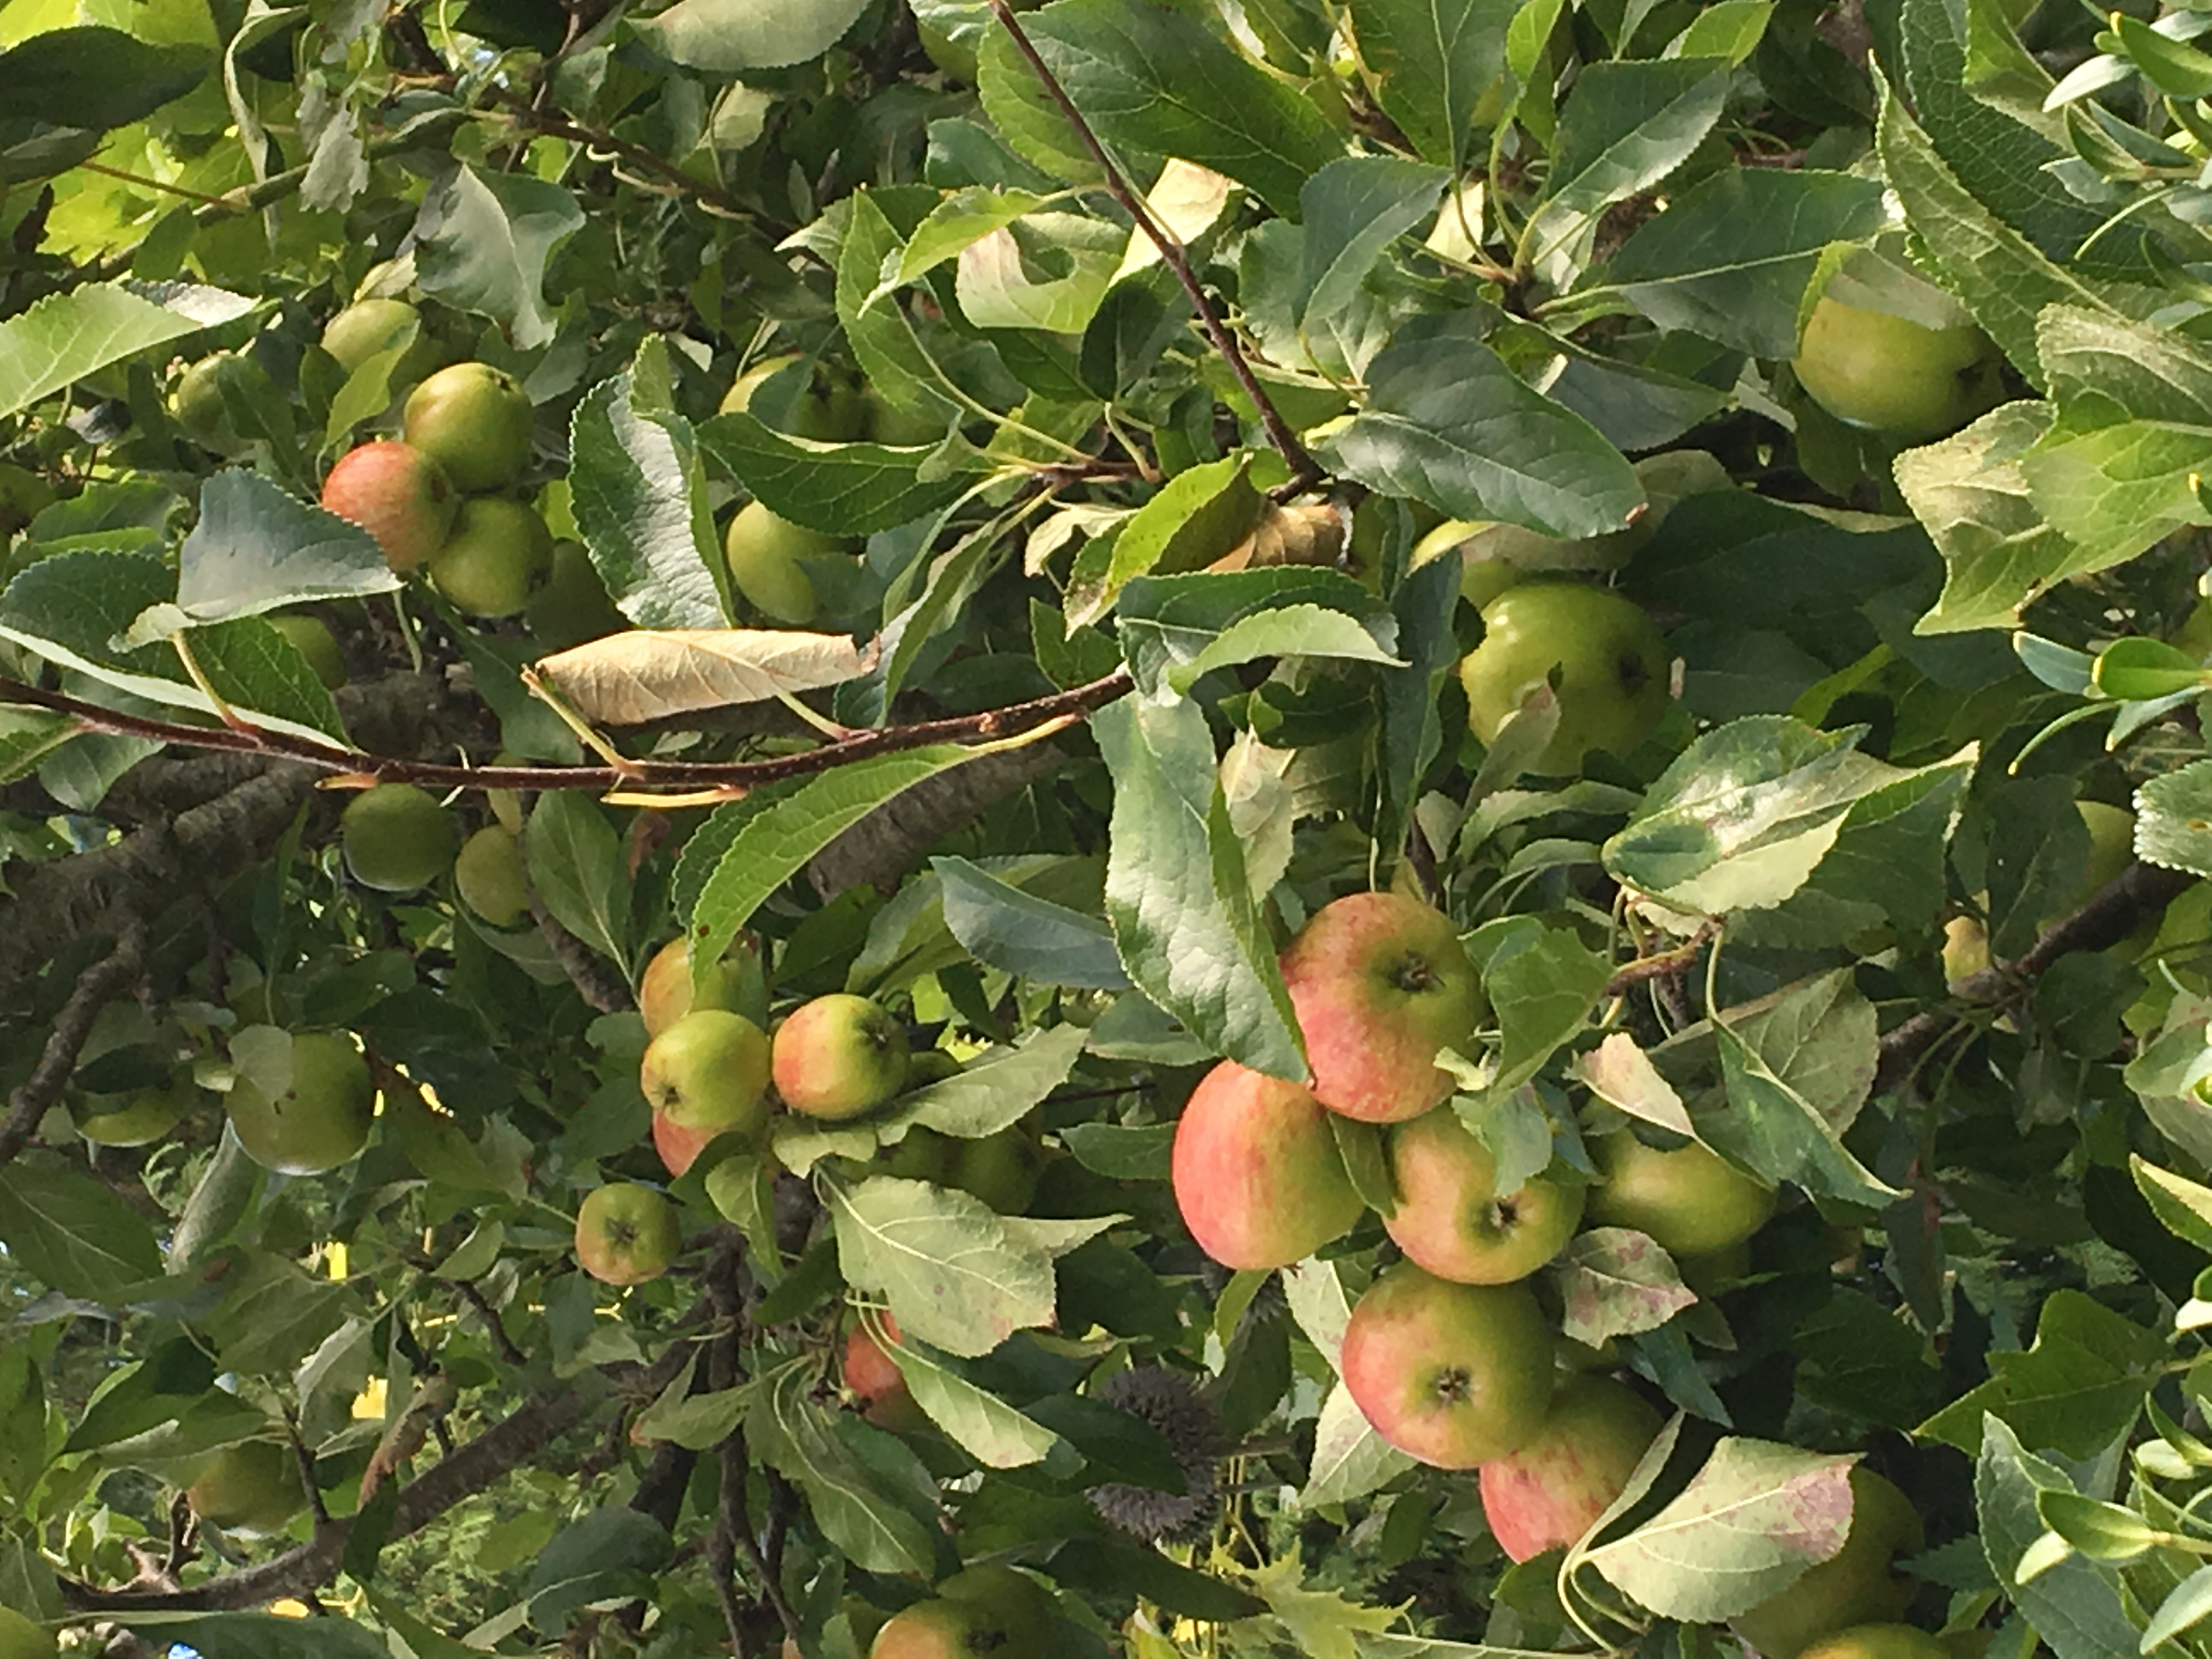 Harvest apples